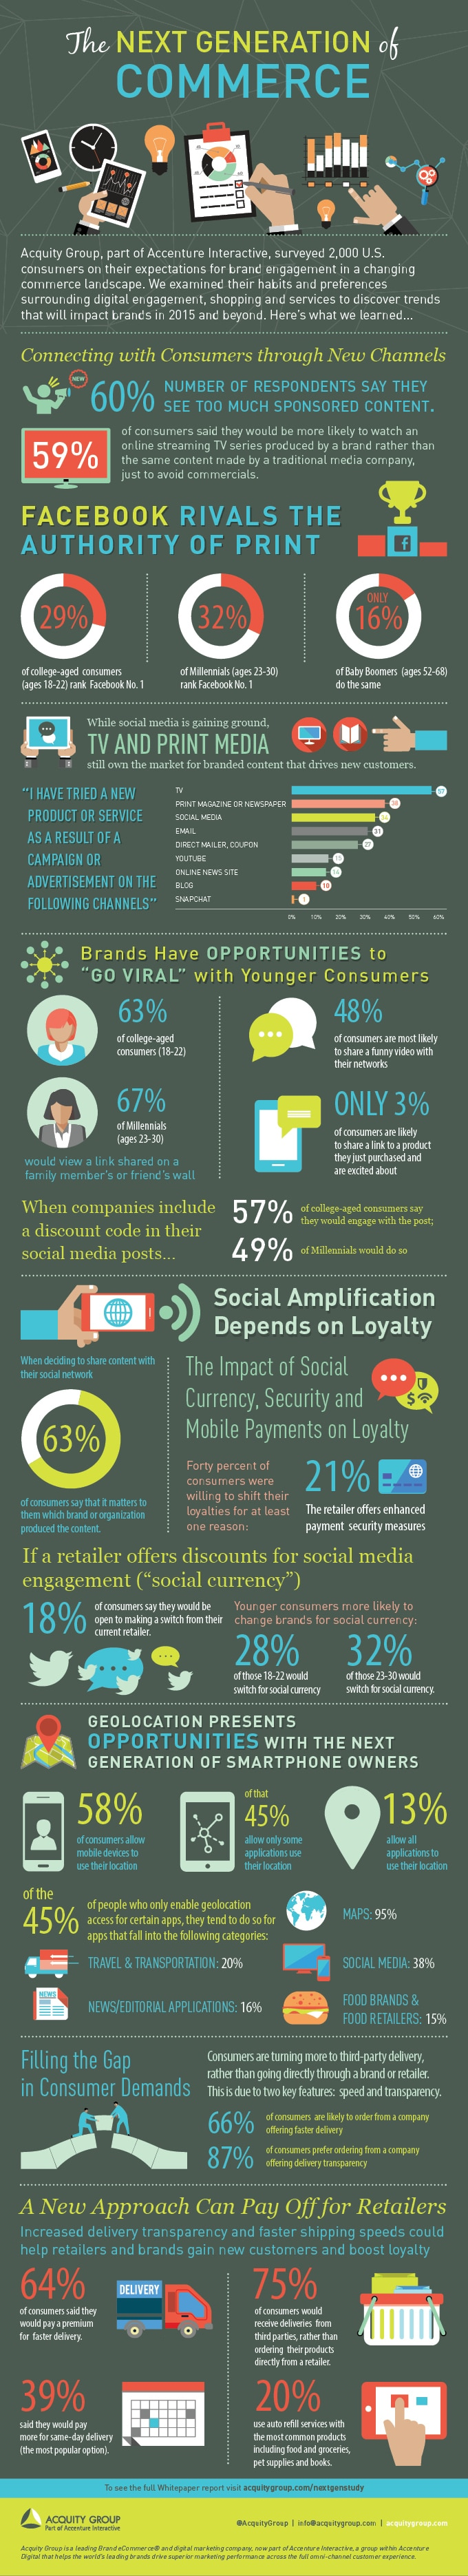 Acquity Group 2015 Next Generation of Commerce Infographic